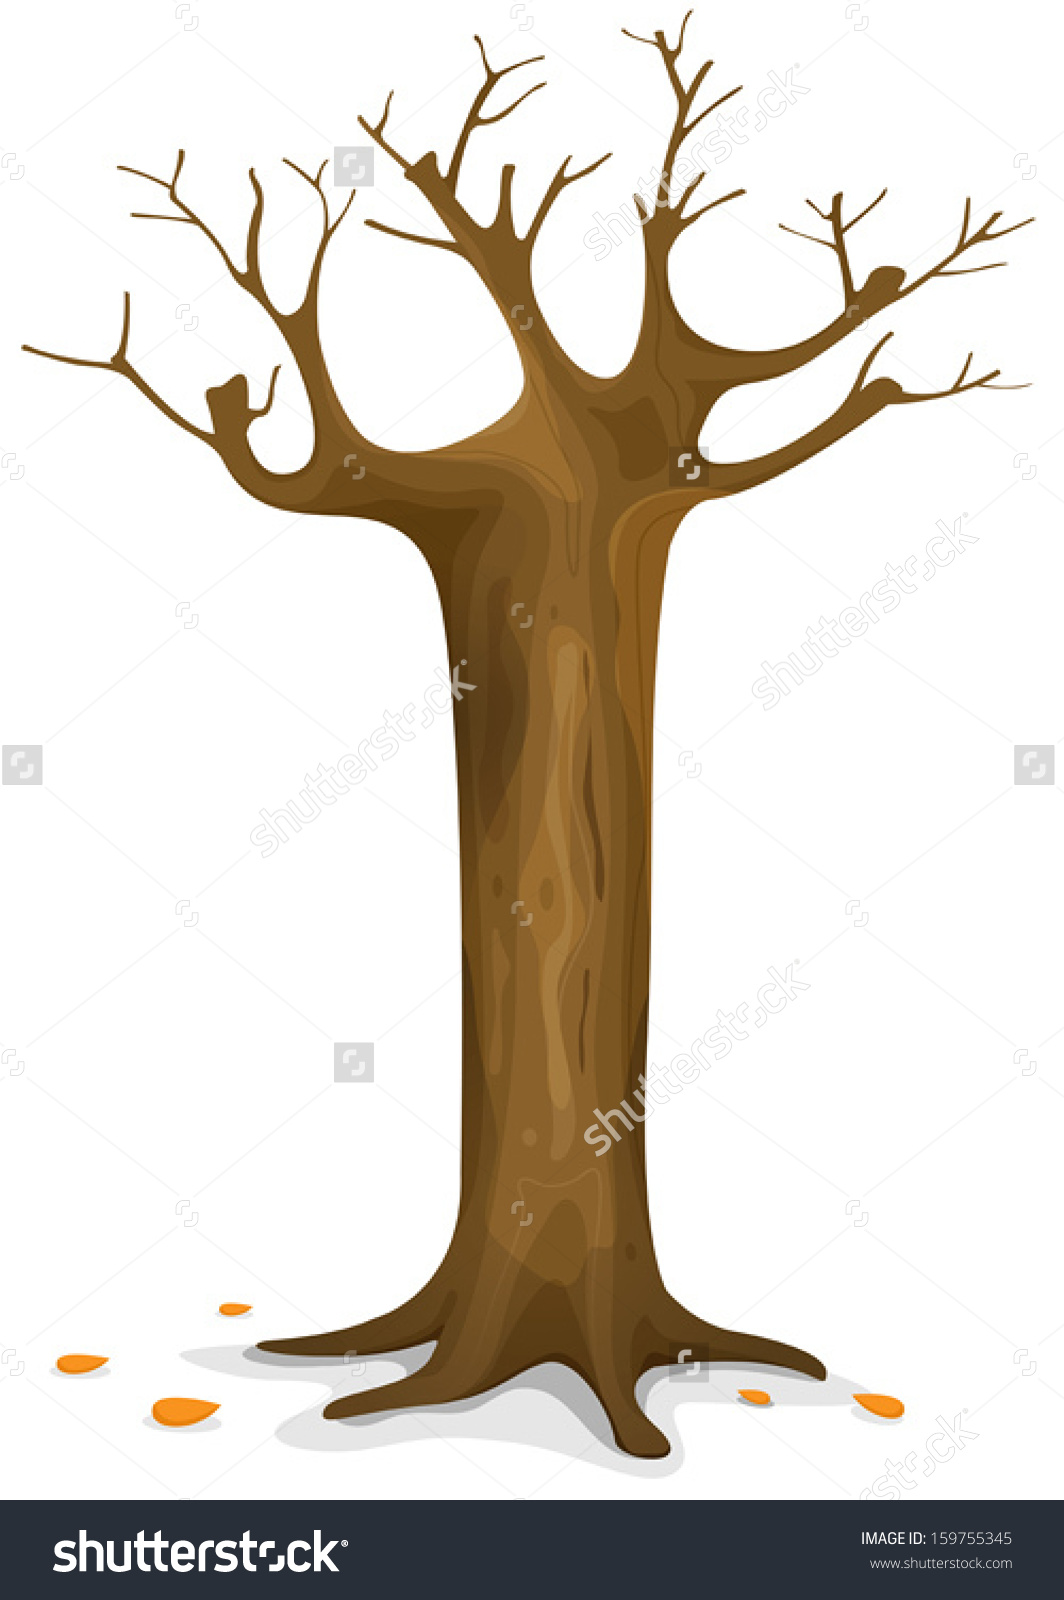 tree with trunk clipart branches #7